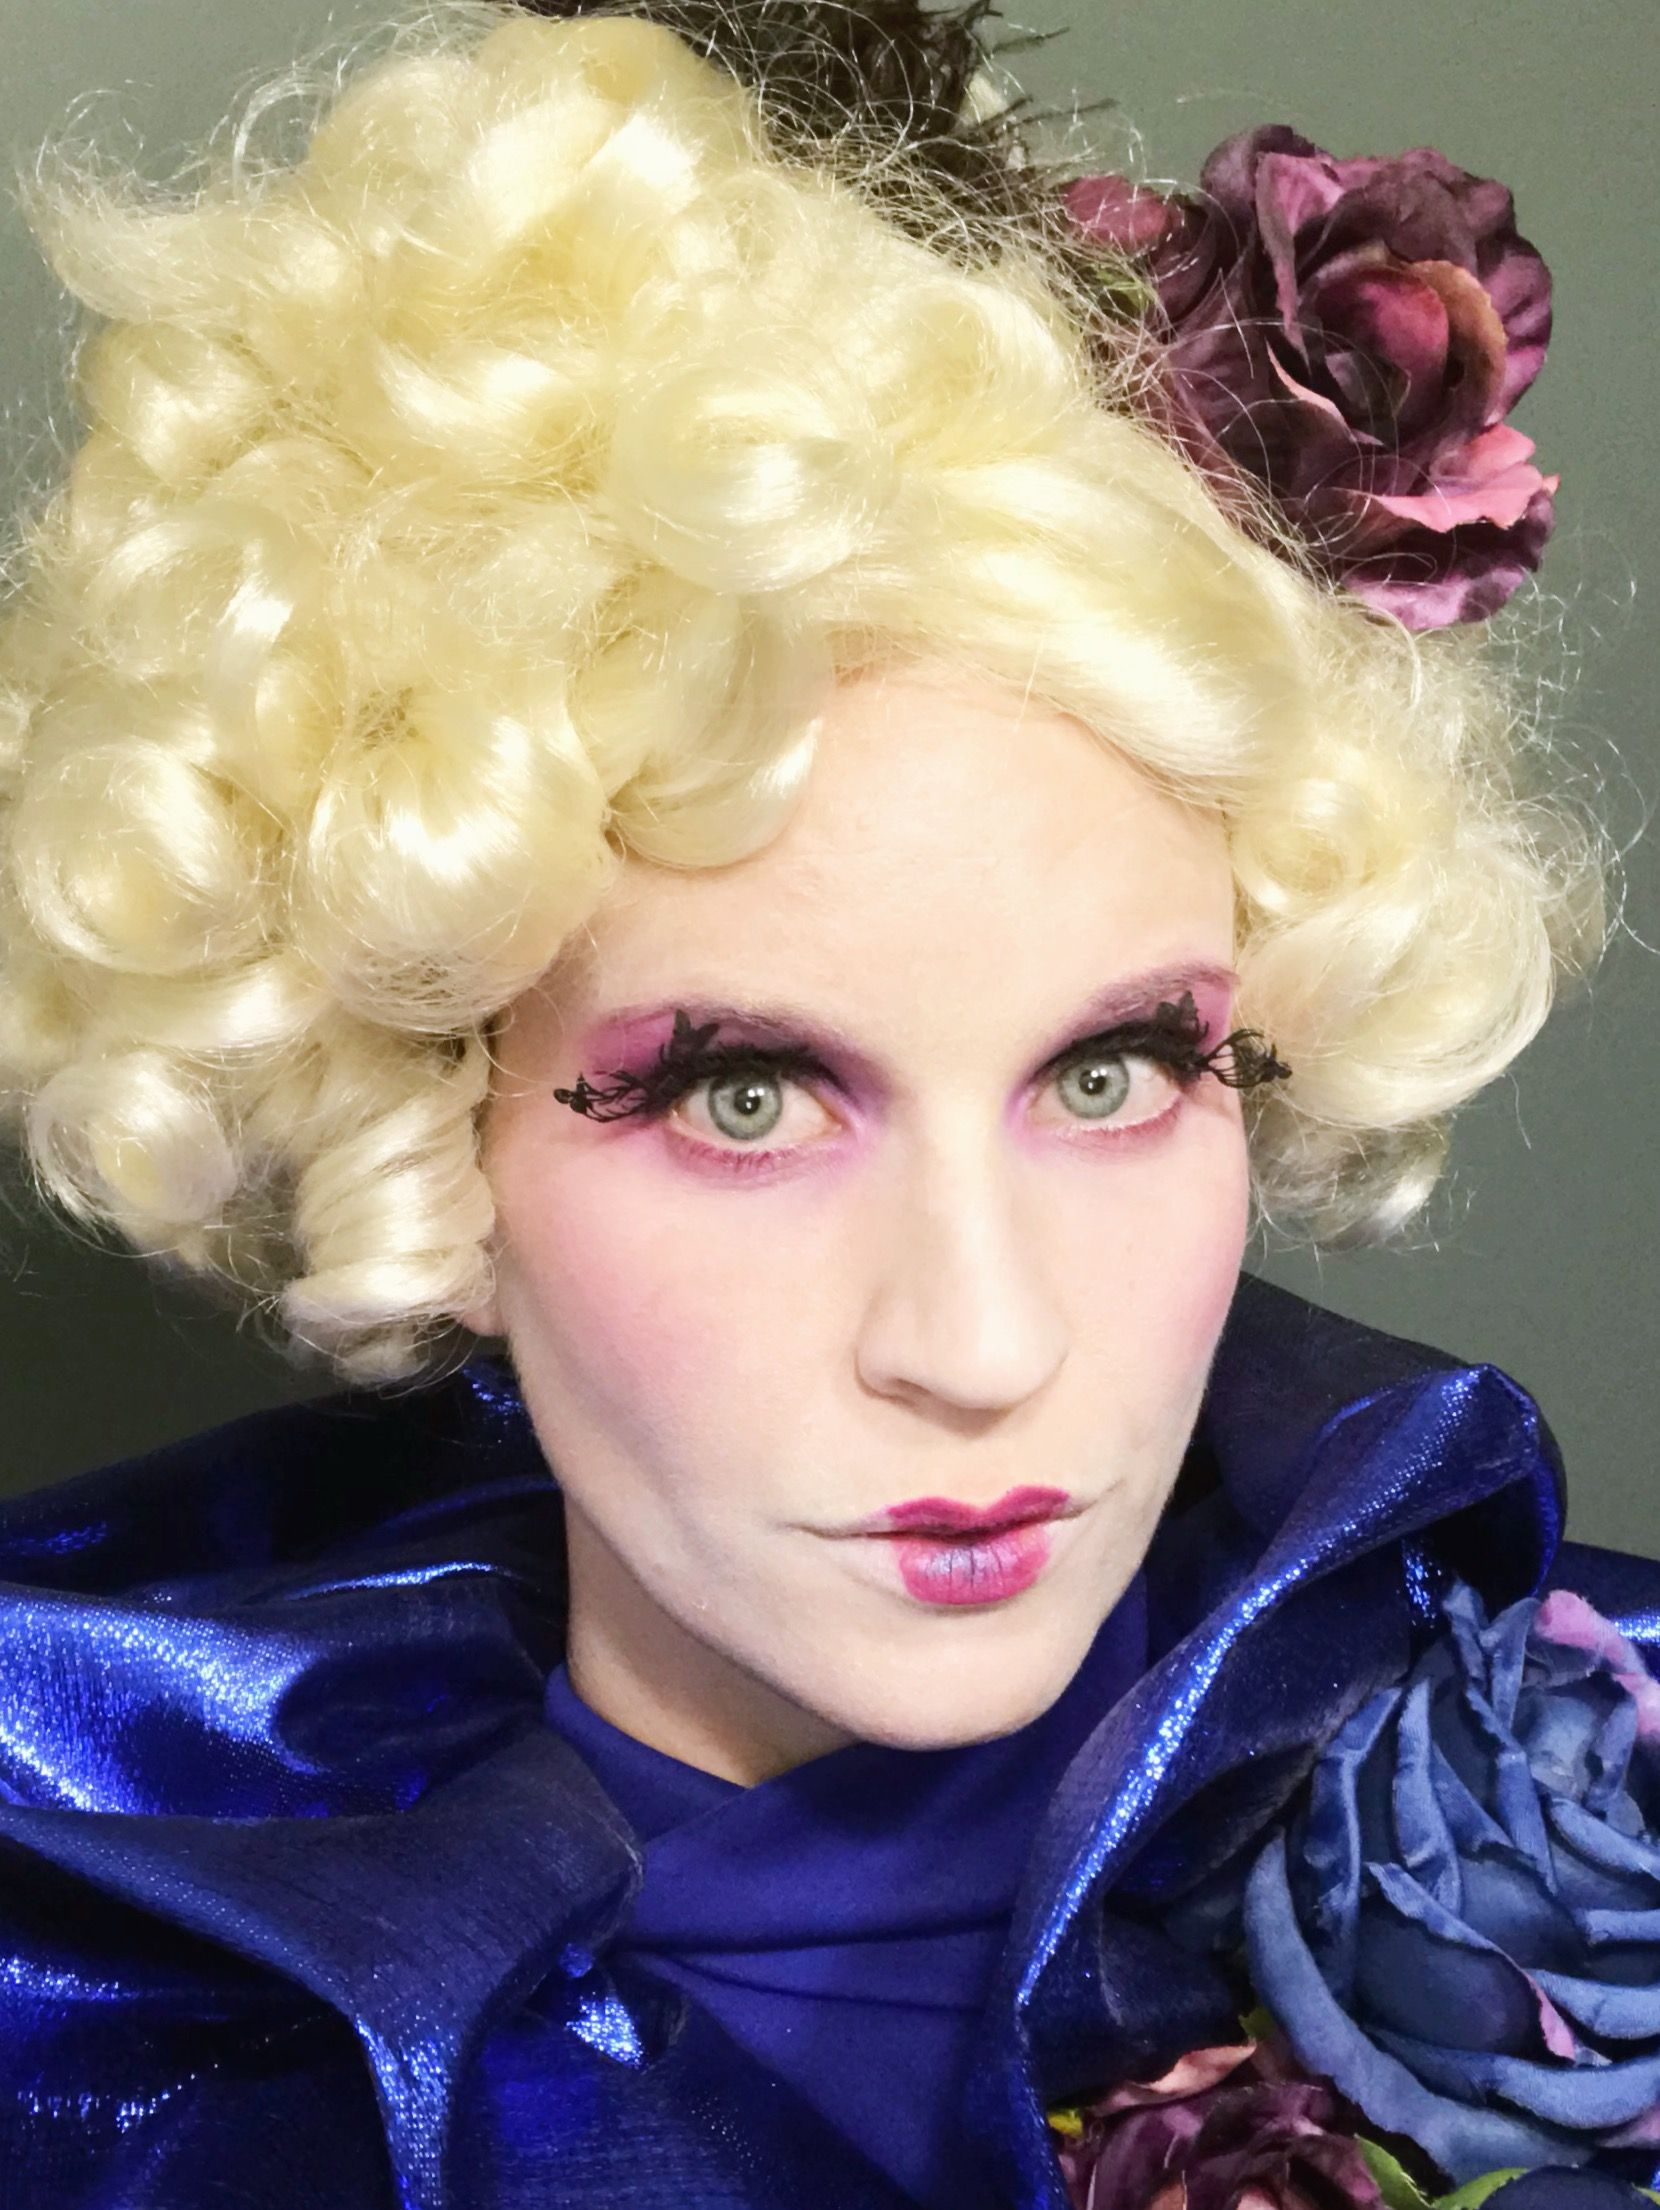 Halloween makeup looks: Effie from The Hunger Games